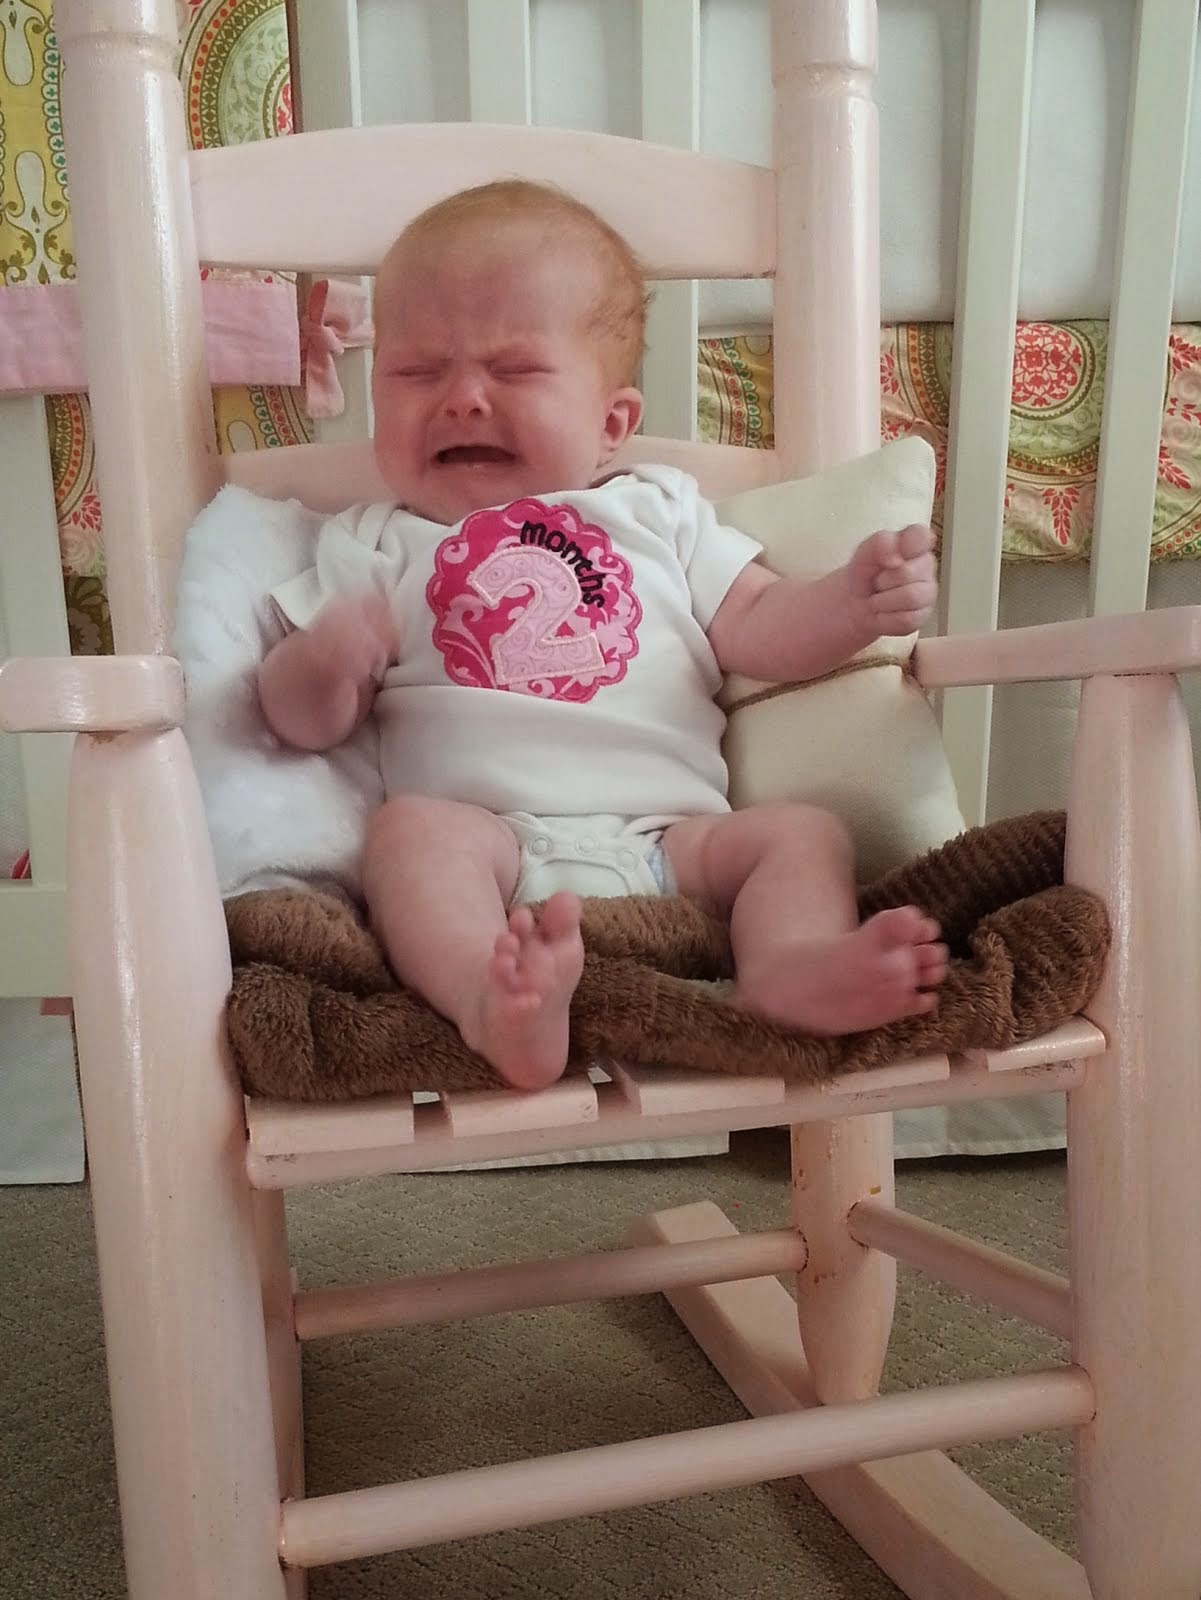 June showing her temper at 2 months